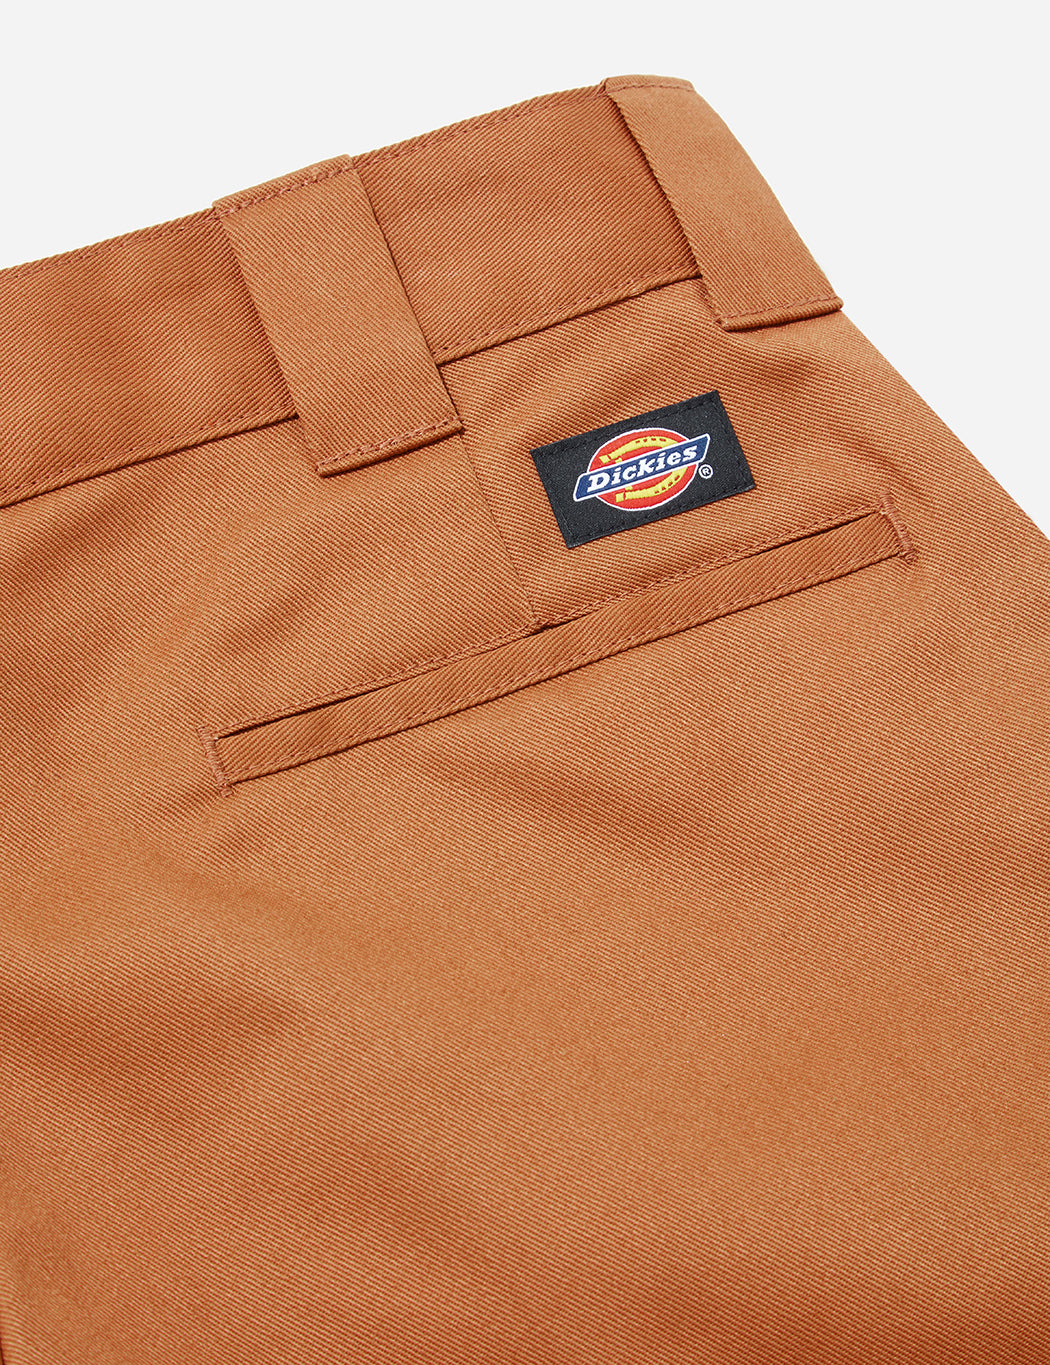 Dickies 873 Work Pant (Slim Straight) - Brown Duck